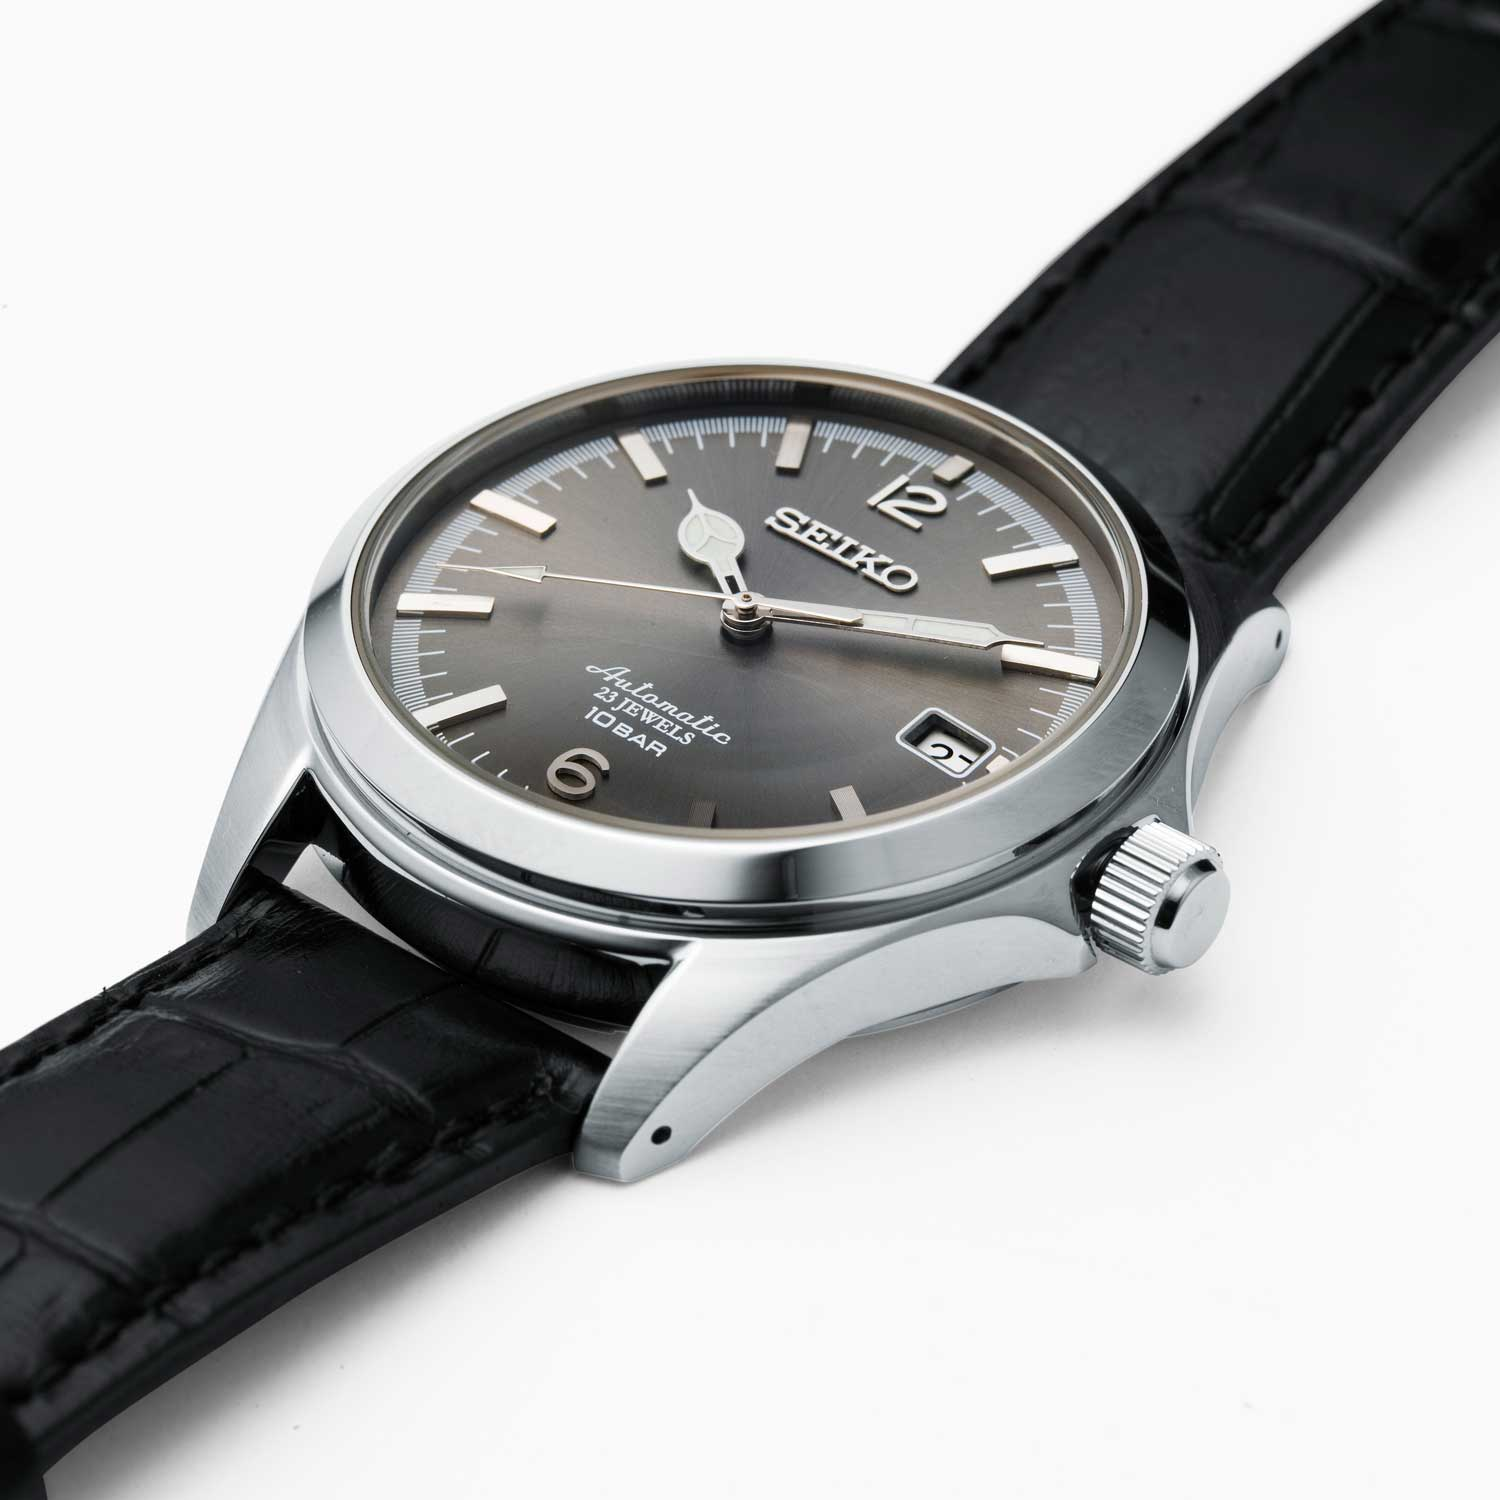 The Seiko x TiCTAC special edition New Classics is developed for the retailer's 35th anniversary. It's only available in Japan both online and offline